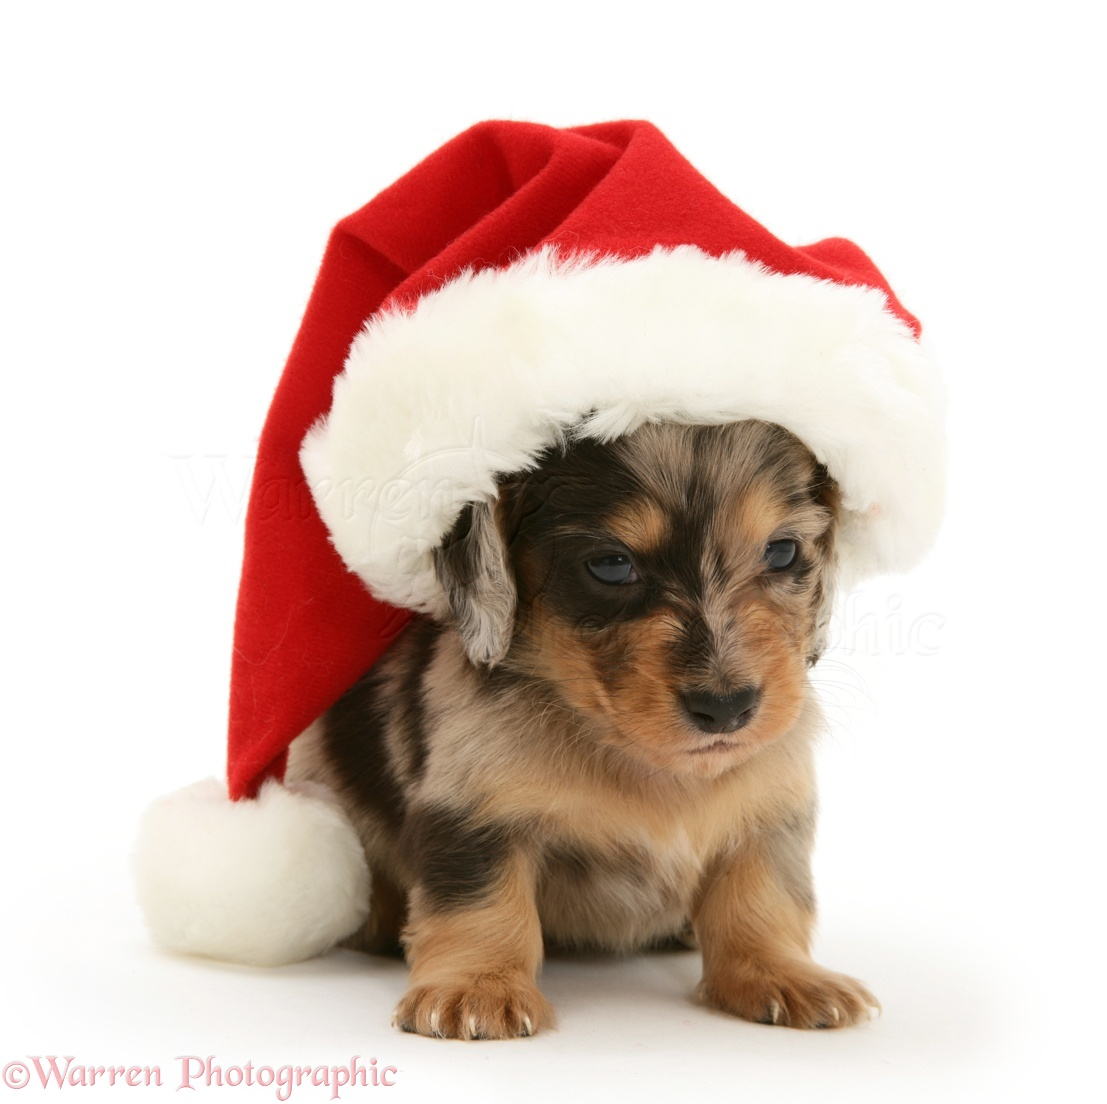 dog pup wearing a Santa hat white background 25 Photos of Dogs Wearing Hat Will Make Your Day